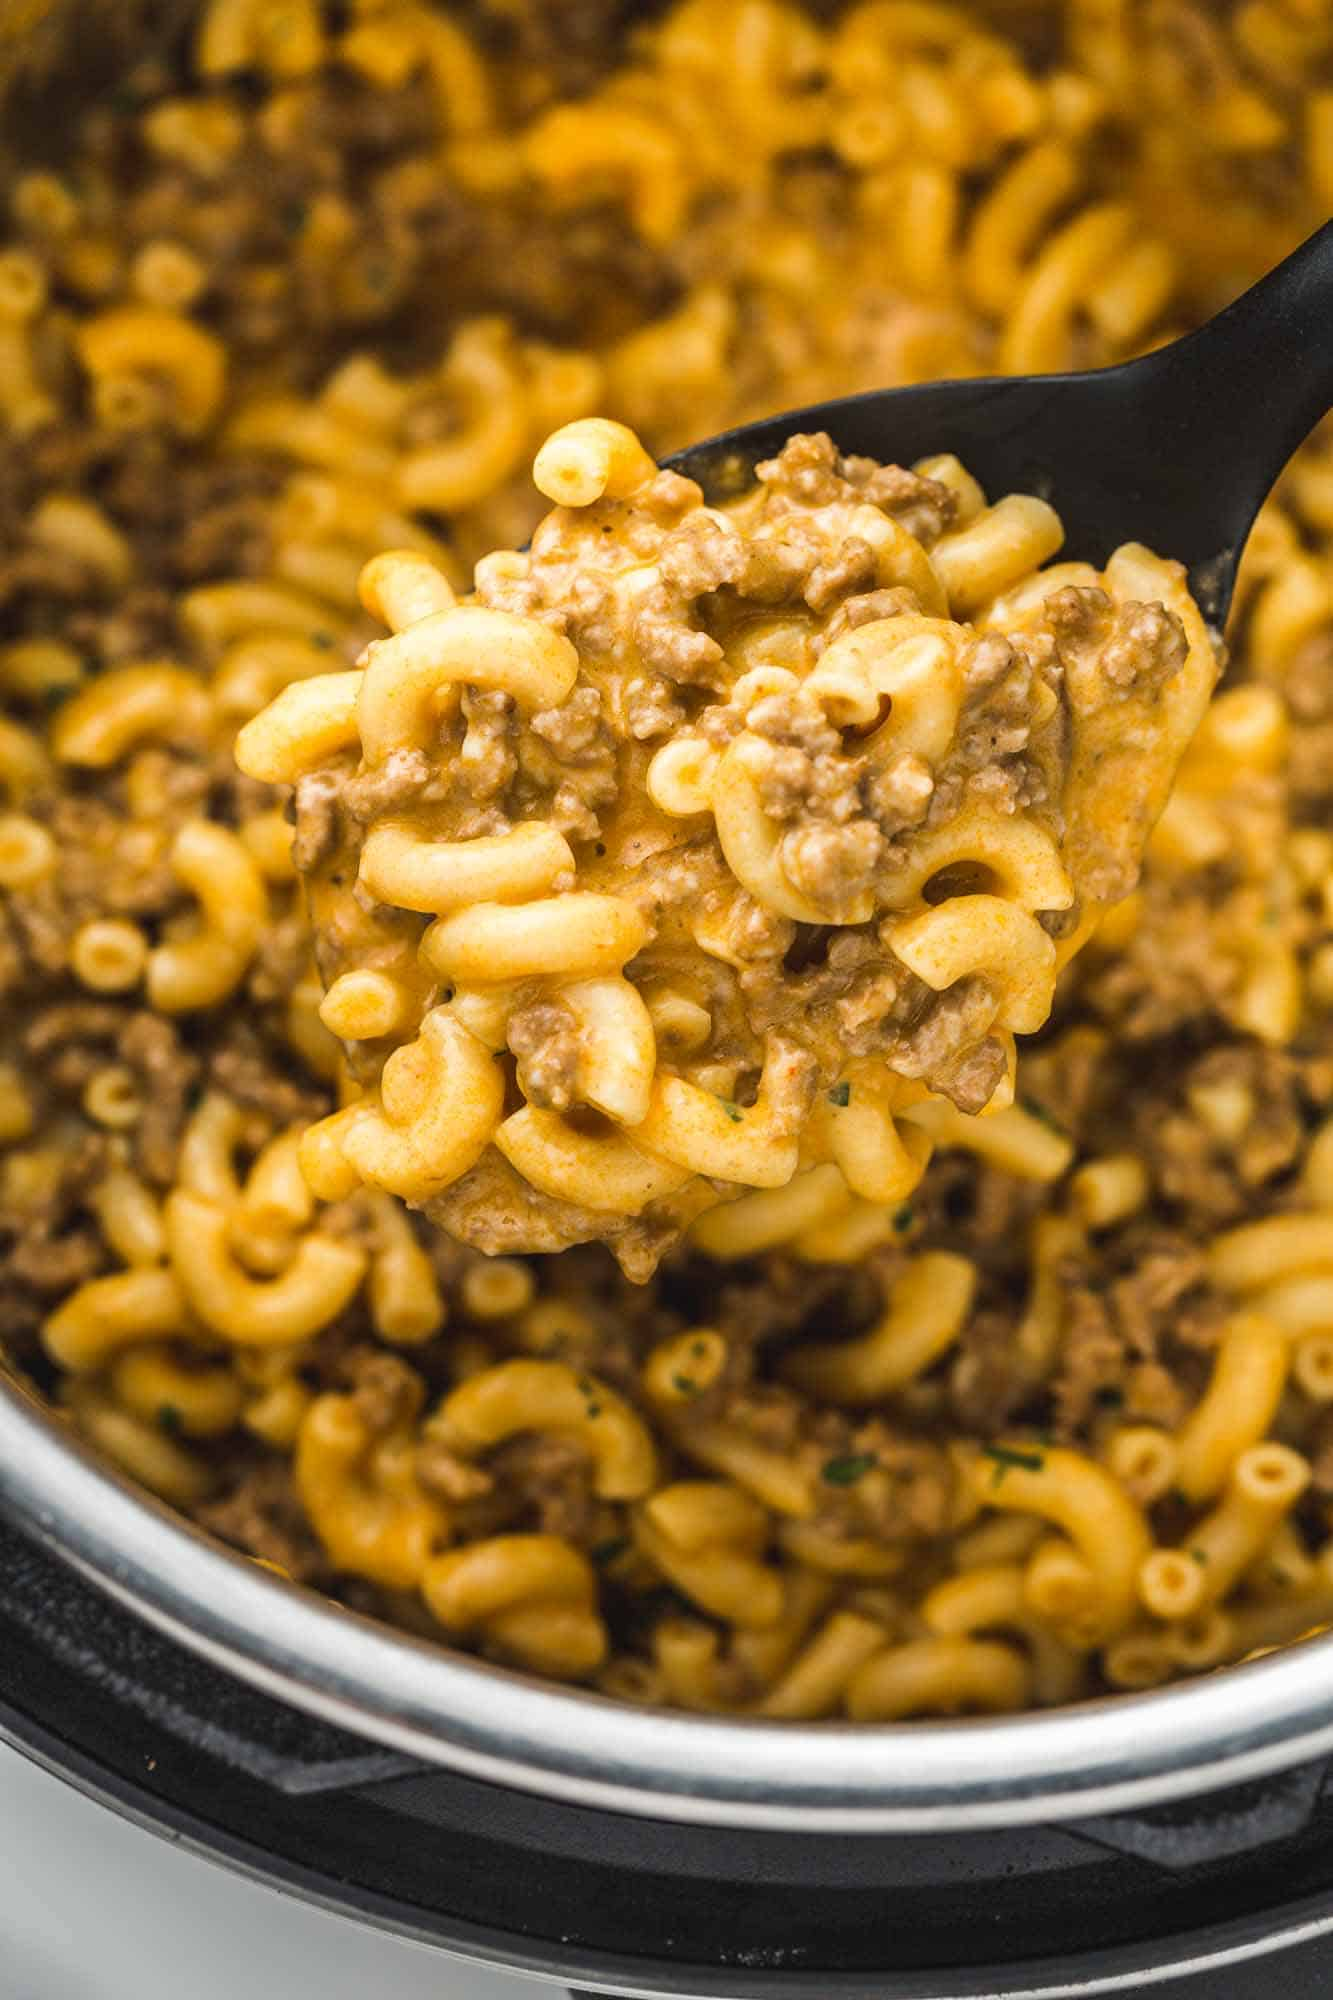 The rich and creamy texture of Hamburger Helper shown on a serving spoon